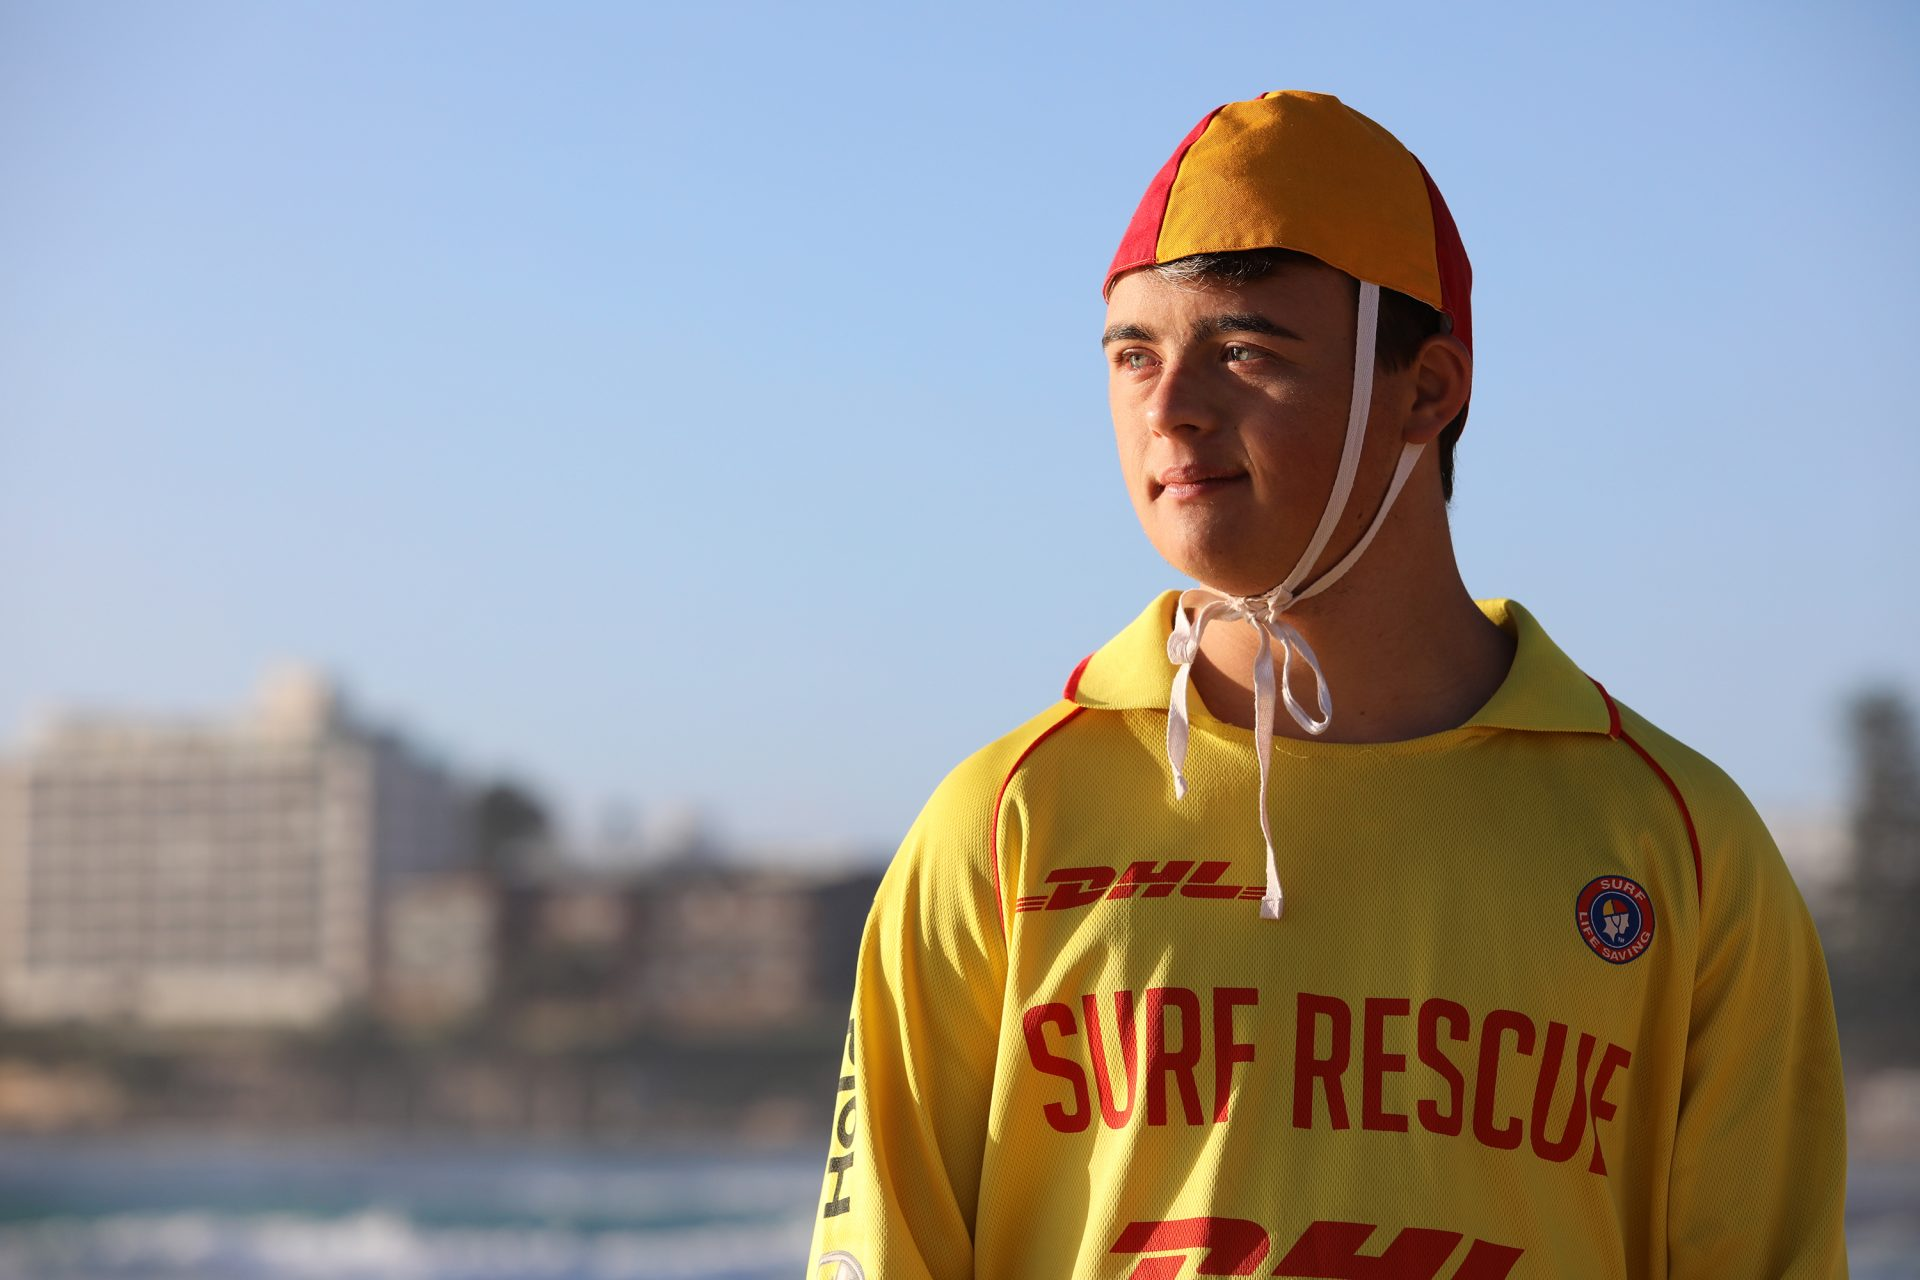 A young man dressed in a life saving outfit looks out to the ocean.